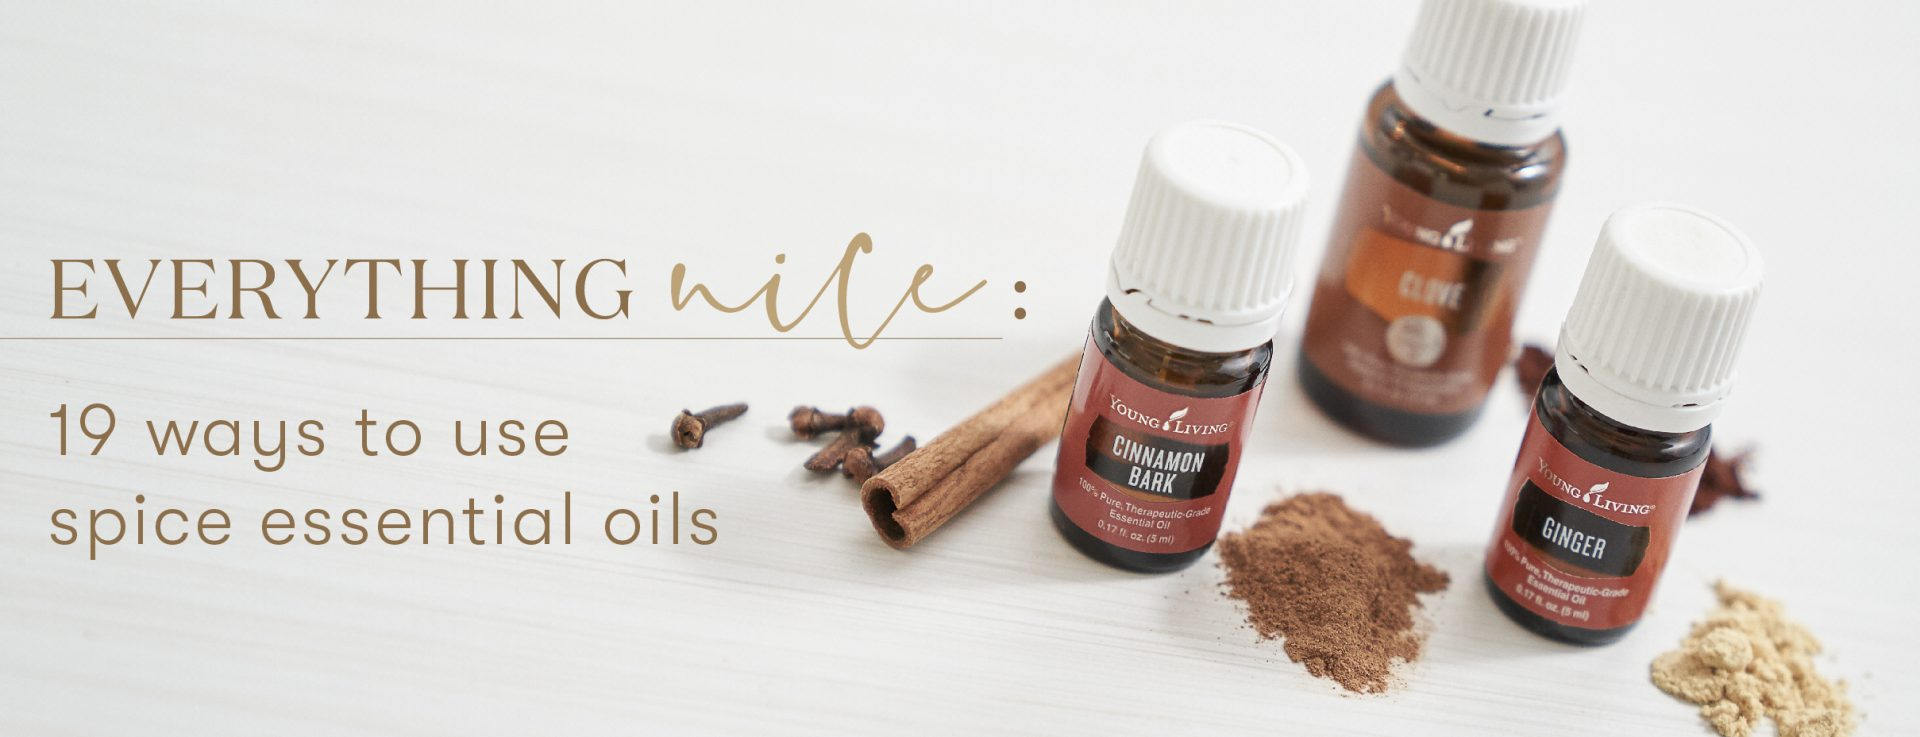 Everything nice, 19 ways to use spice essential oils